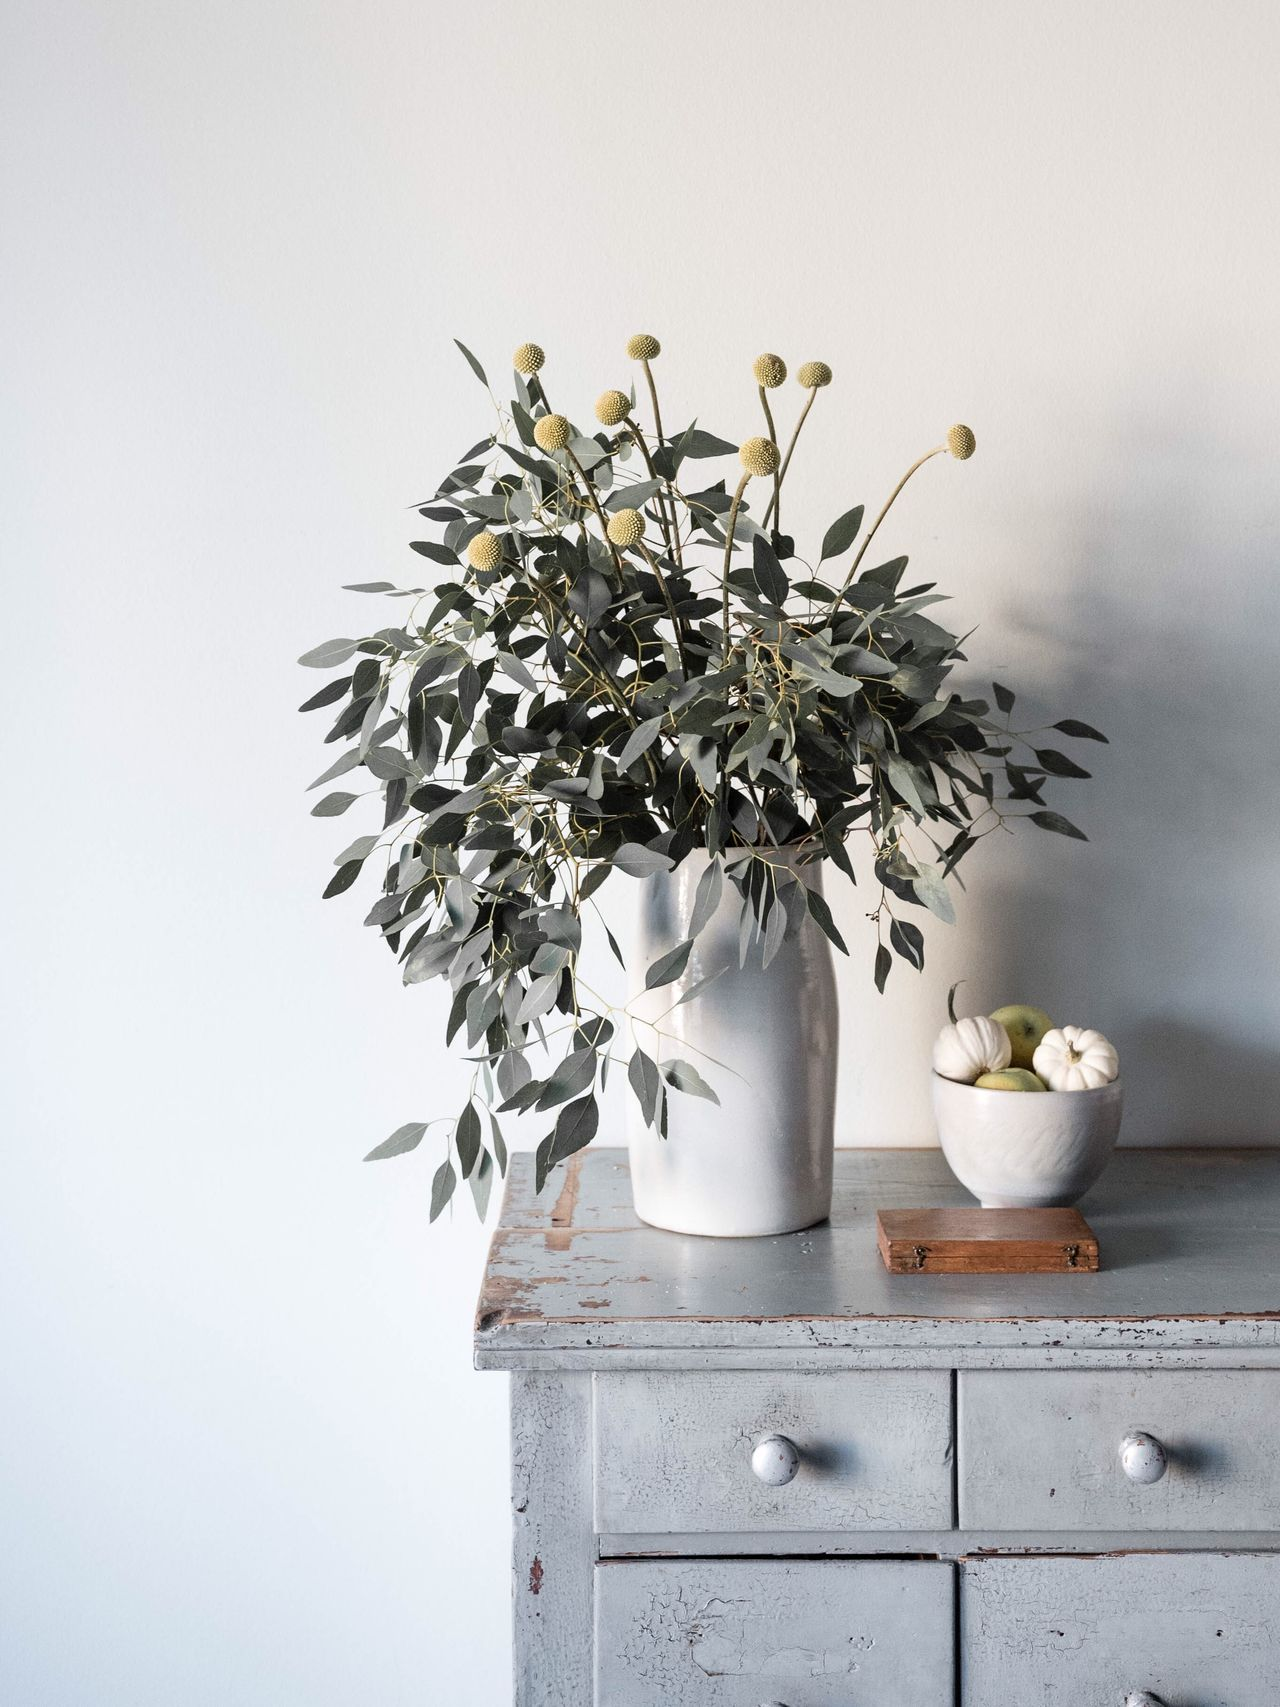 Flowers Decoration Bunch Of Flowers Flower Arrangement In Bloom Shelf Vintage Style Interior Views Lifestyle Photography Home Morning Light Home Atome StillLifePhotography